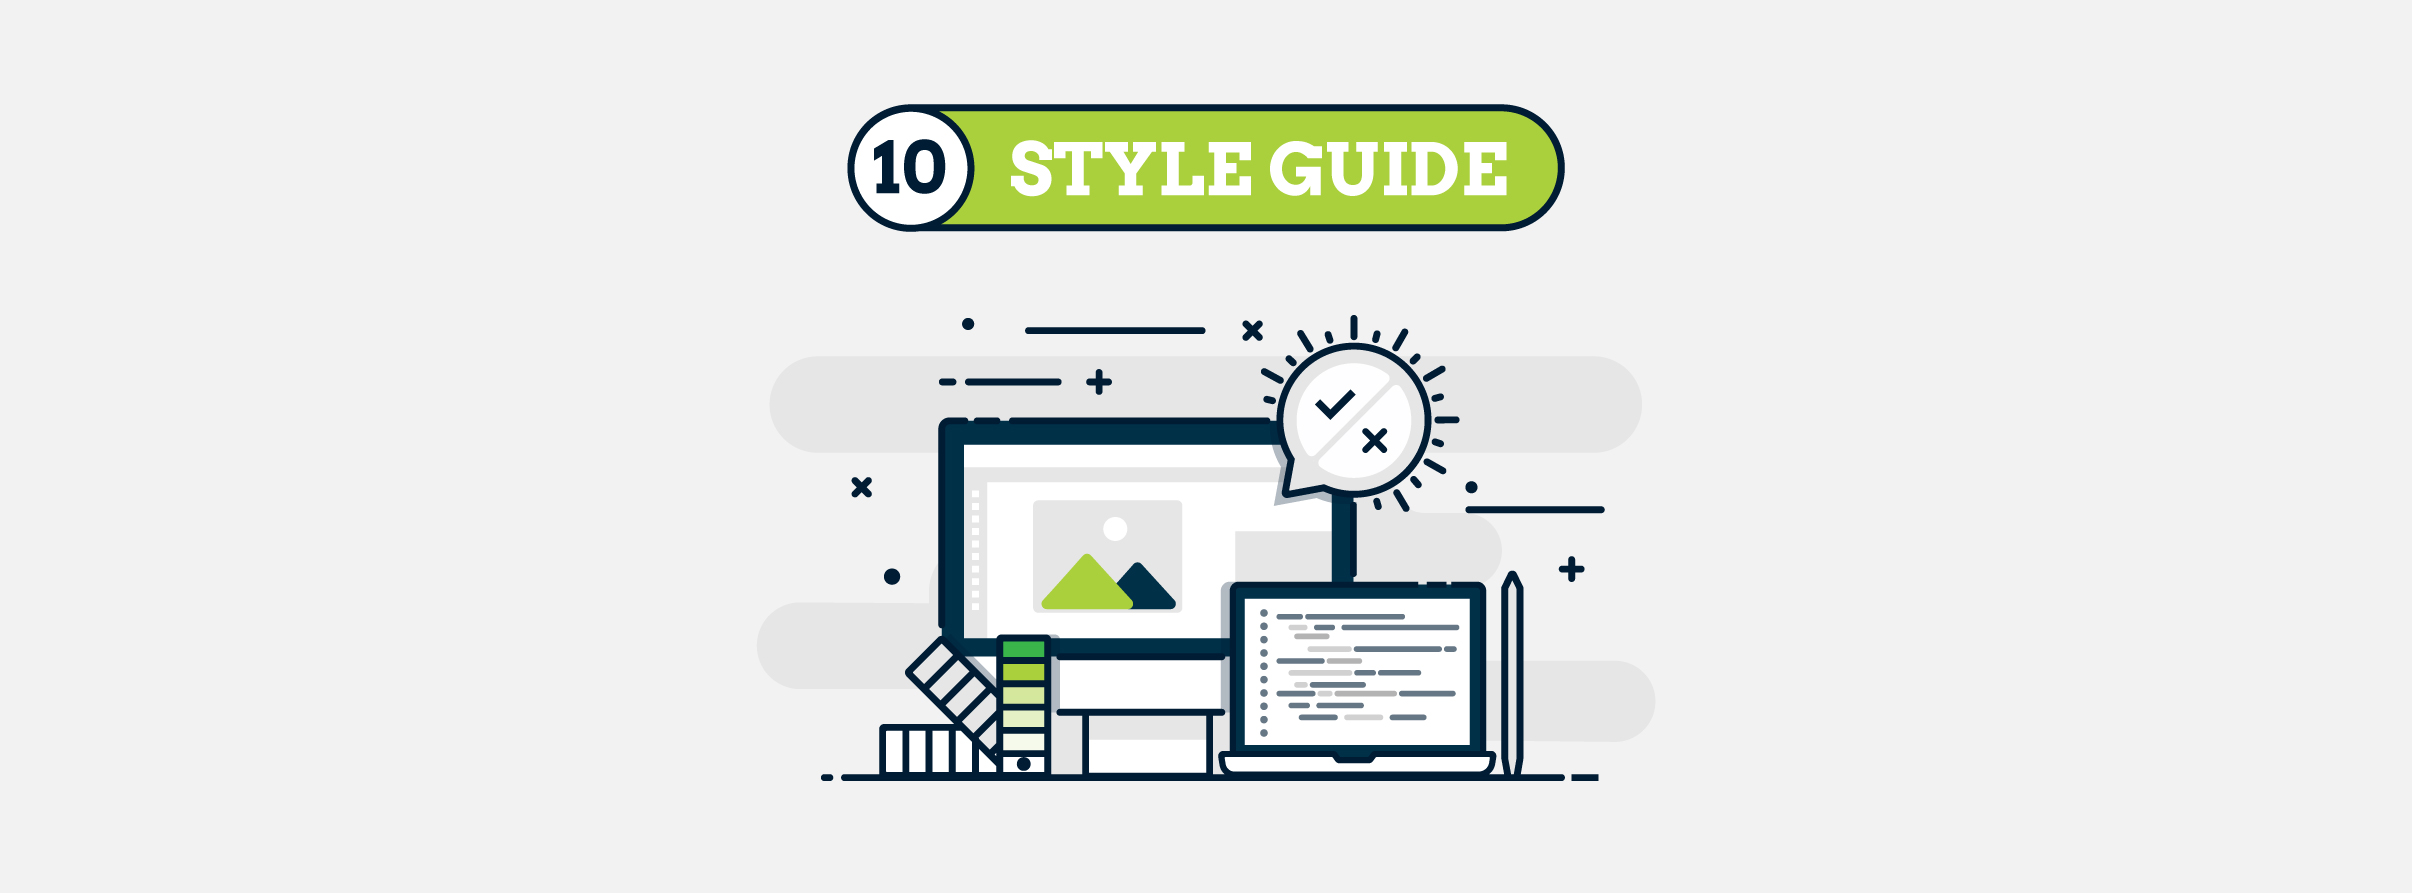 Design terms - style guide